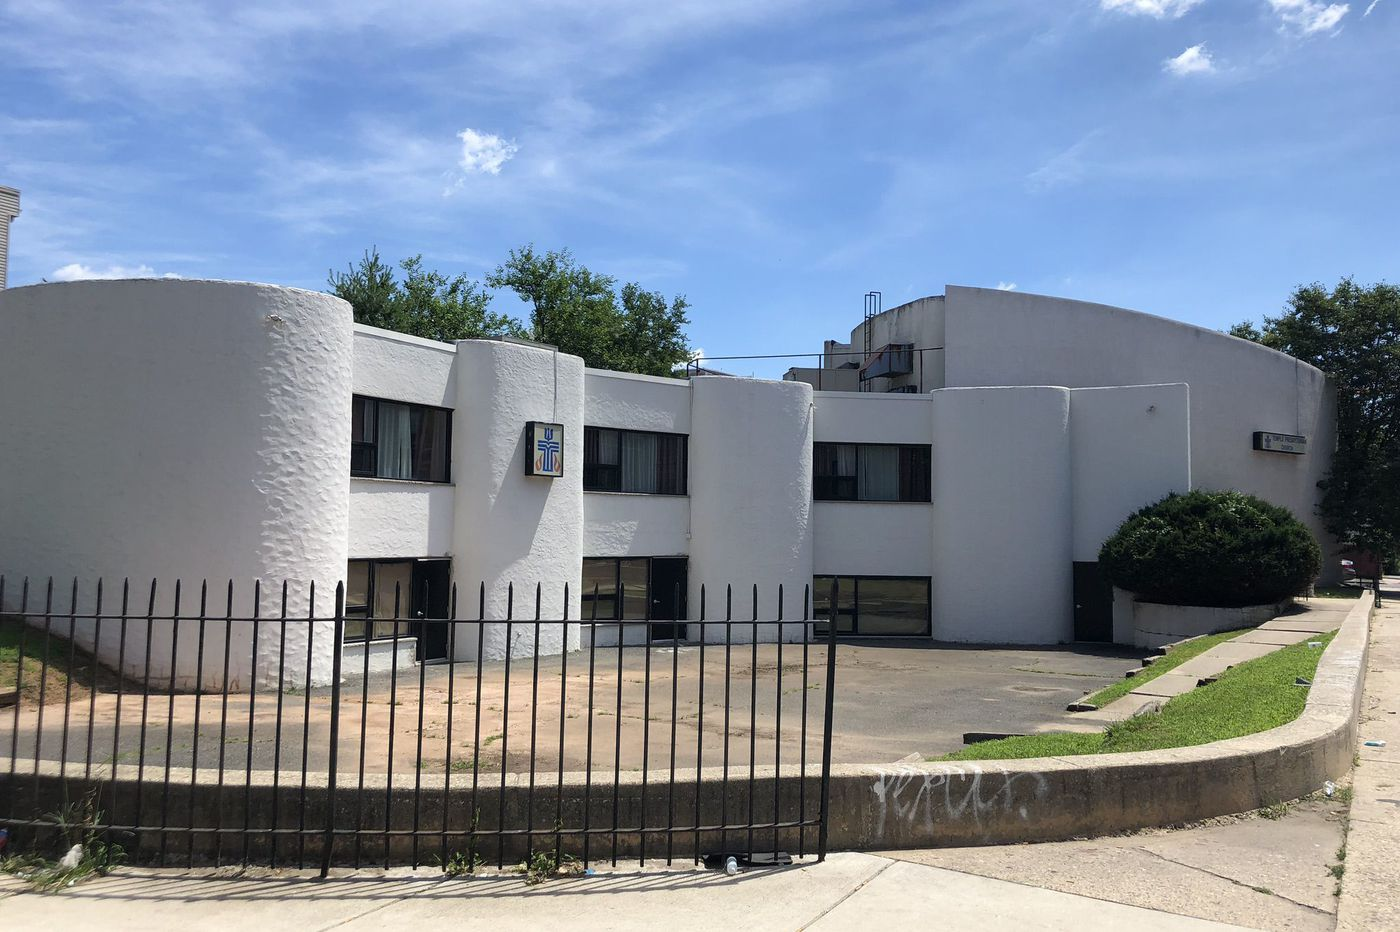 How did this curvy modernist building end up in North Philadelphia in the '60s?   Inga Saffron